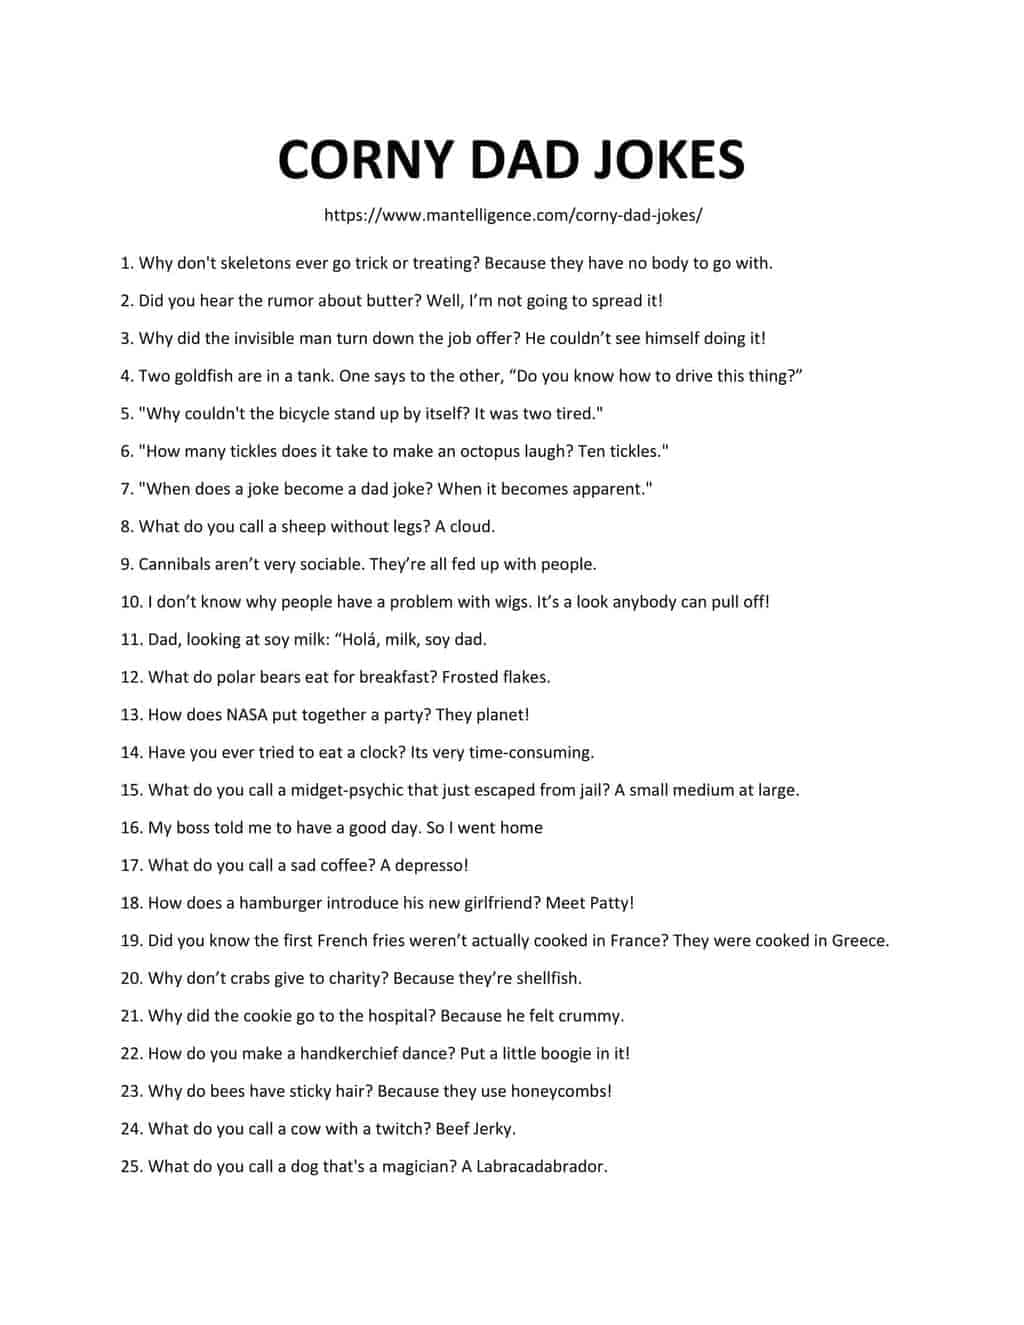 list of corny dad jokes-1